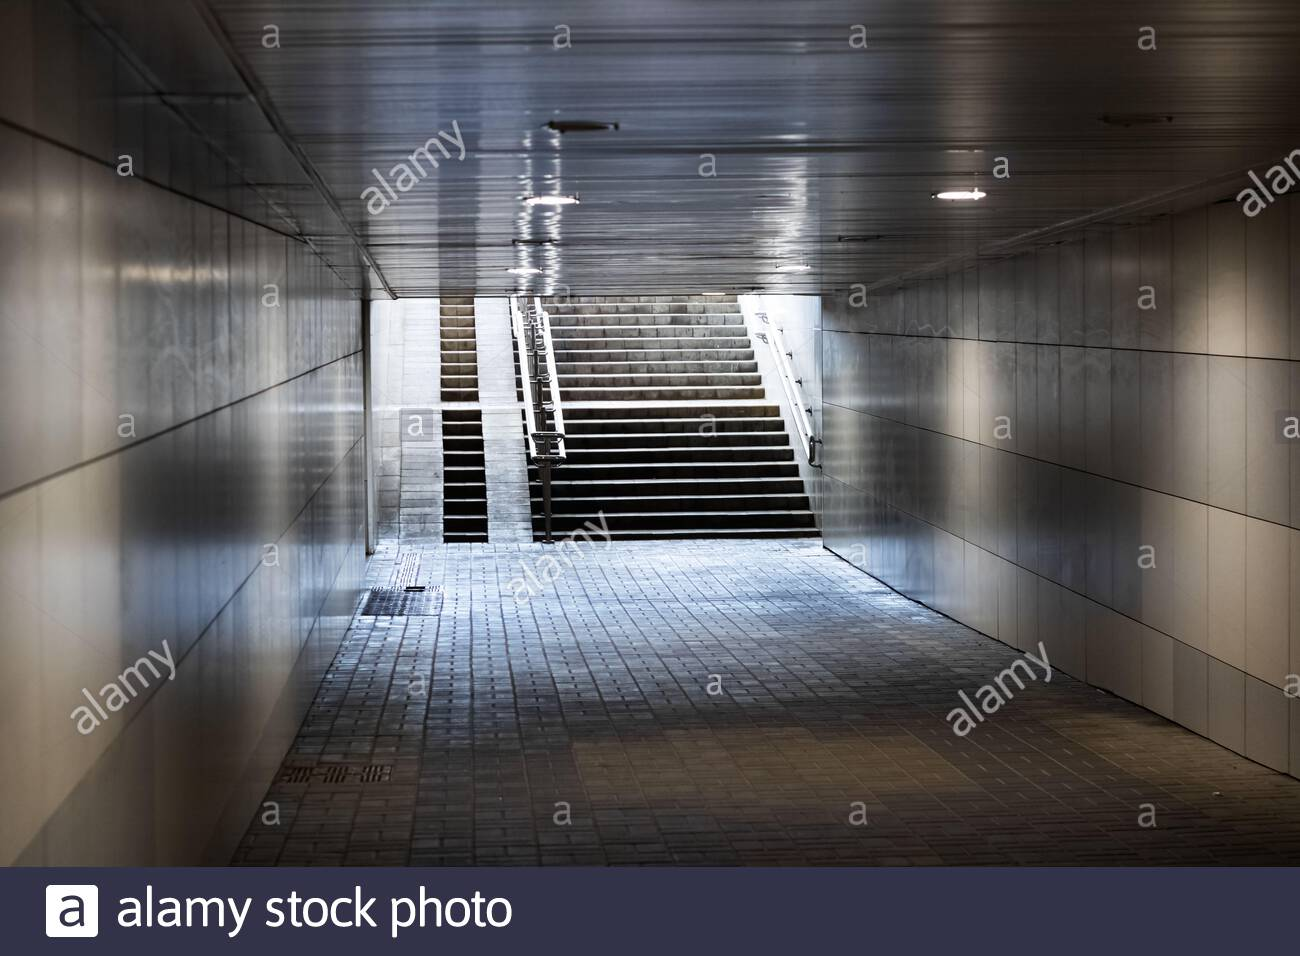 exit tunnel underpass and stairs in sunlight 2ATP5J4